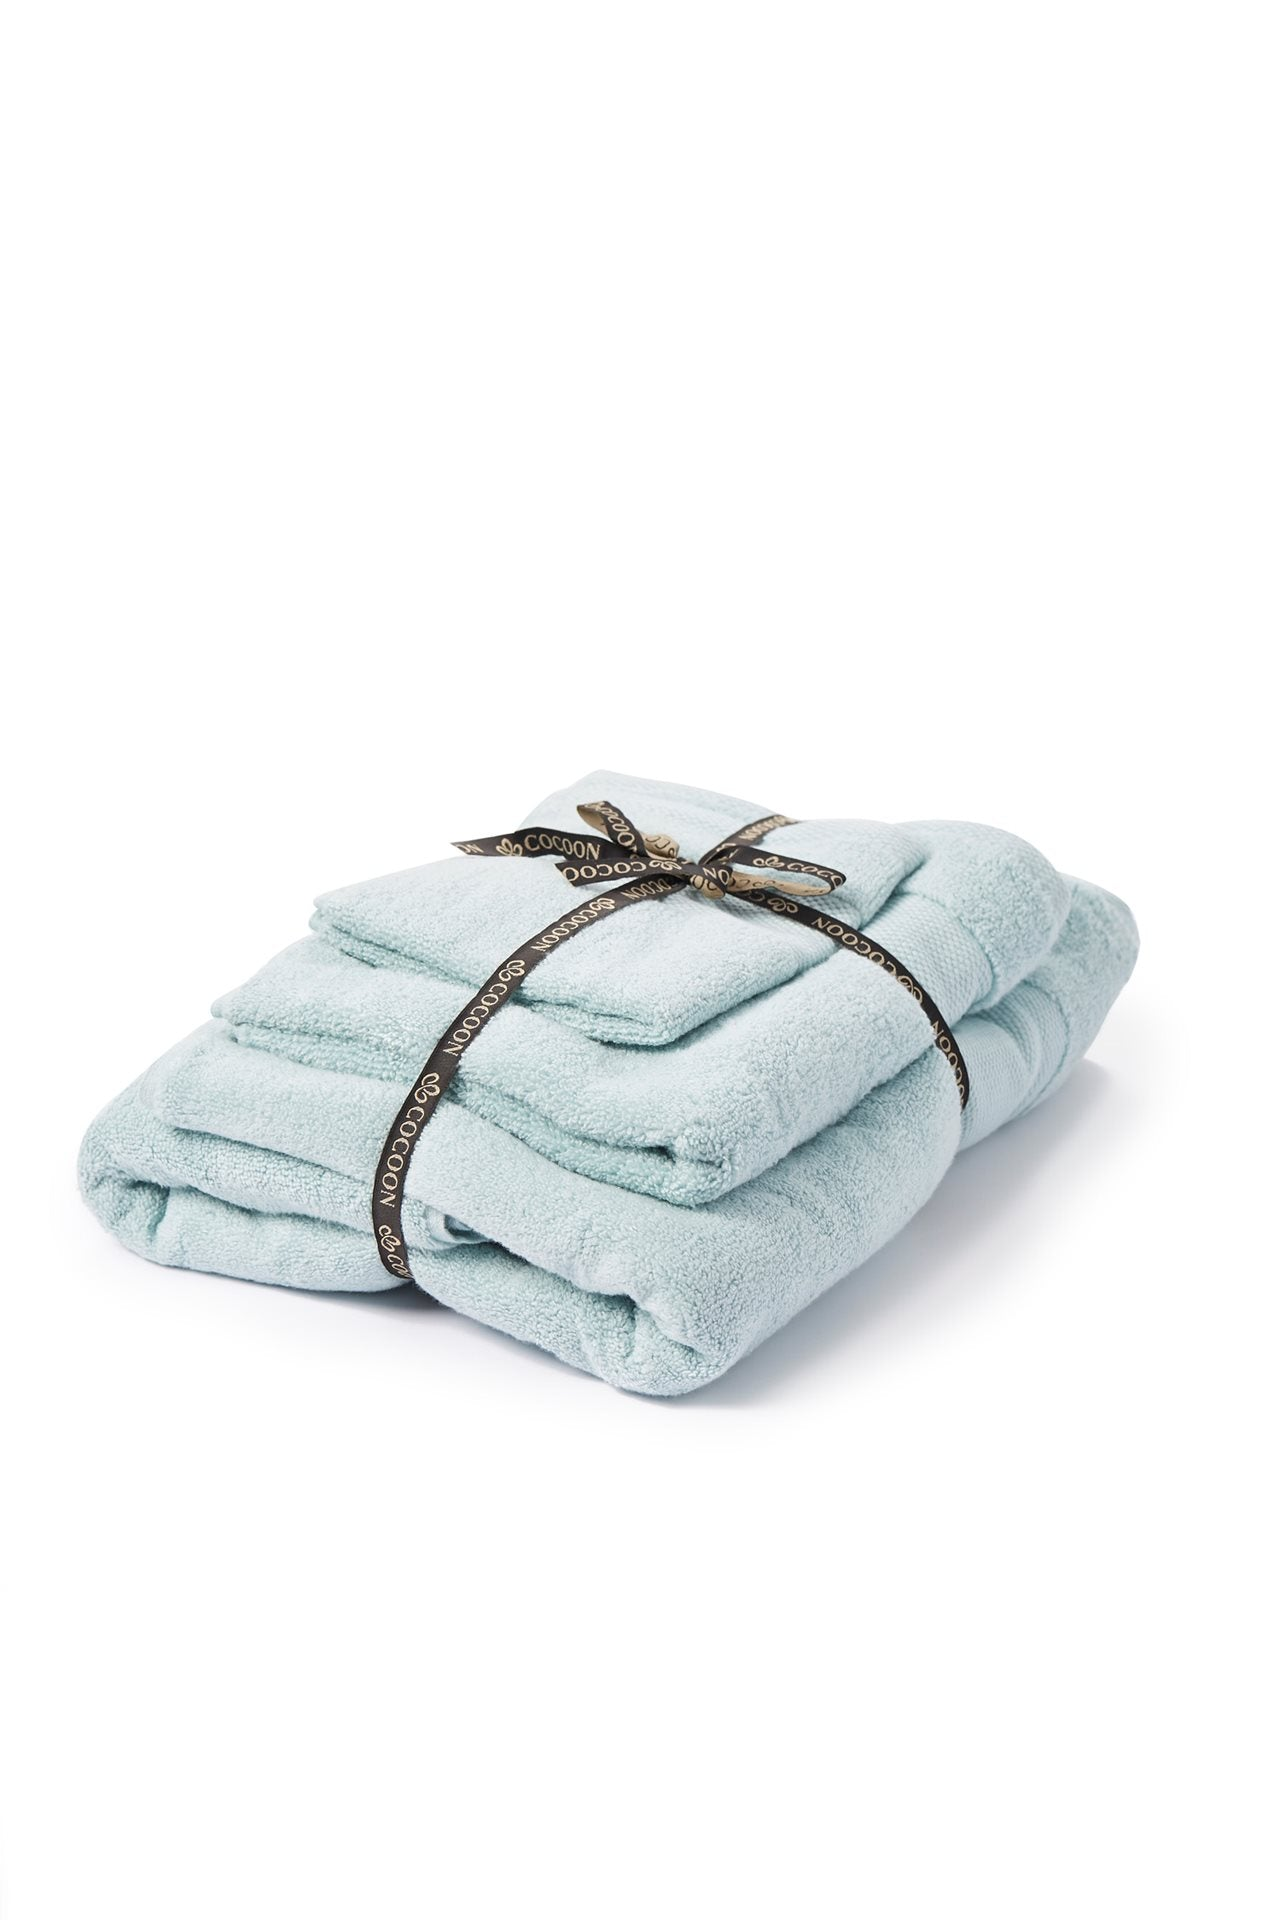 Plain Towel Set